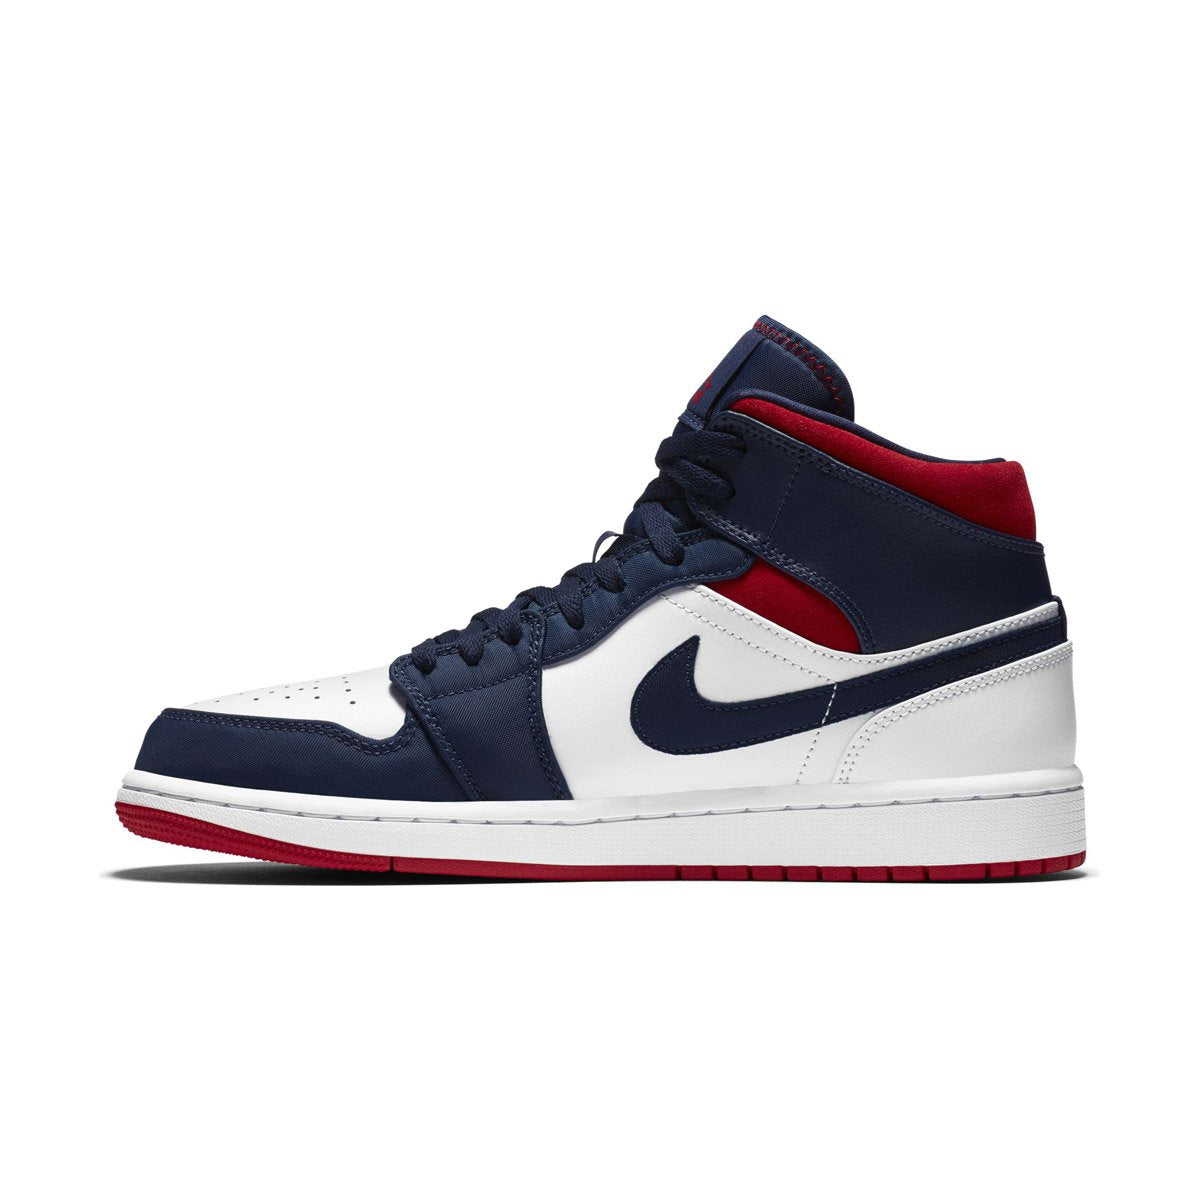 Men's Air Jordan 1 Mid SE